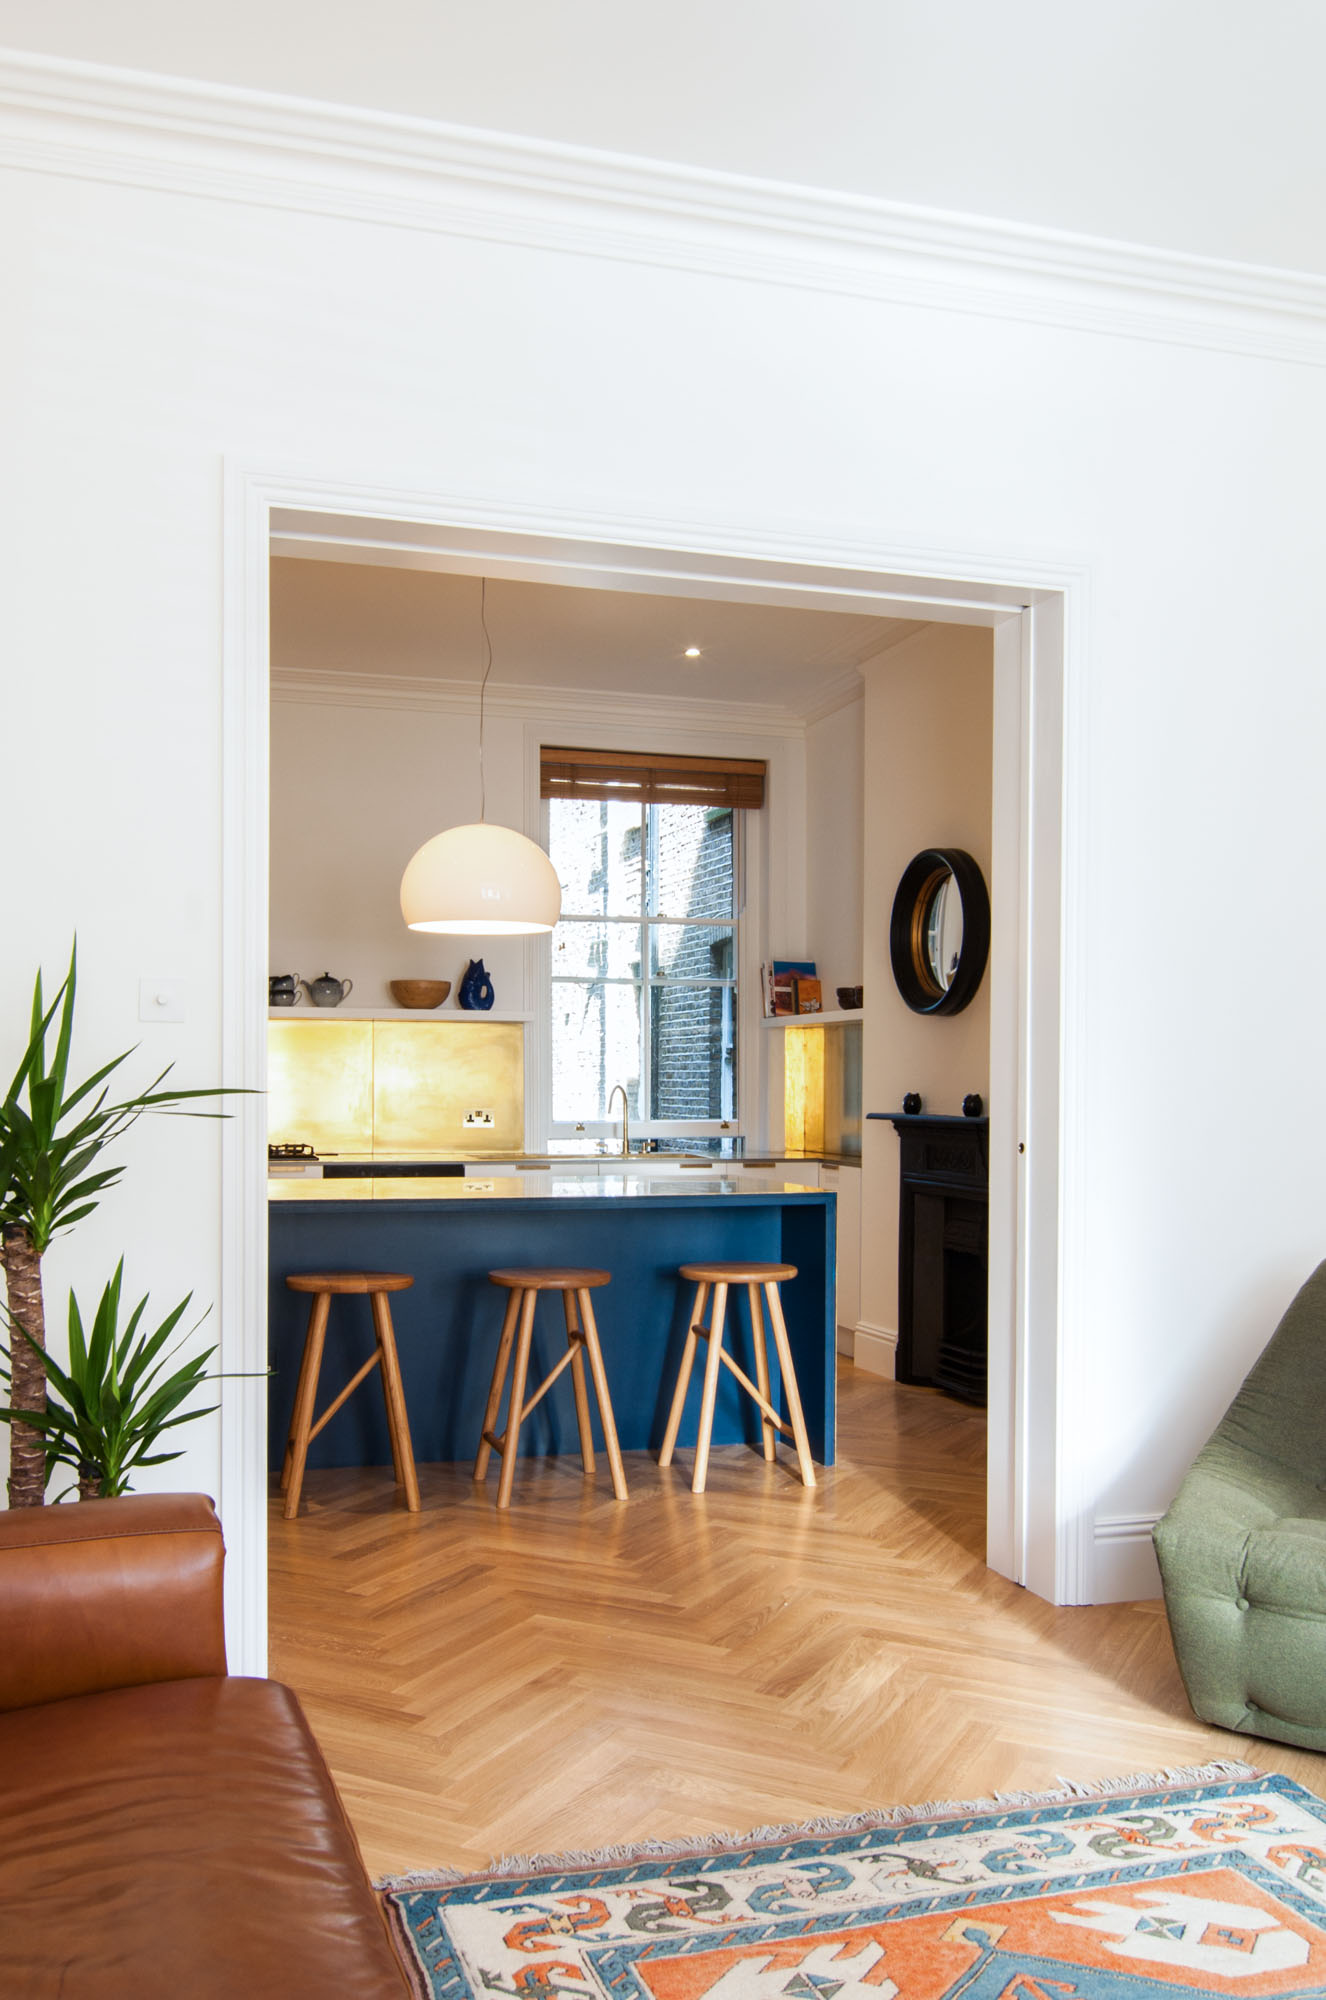 The teal and gold brass kitchen view from the colourful and bright living space.